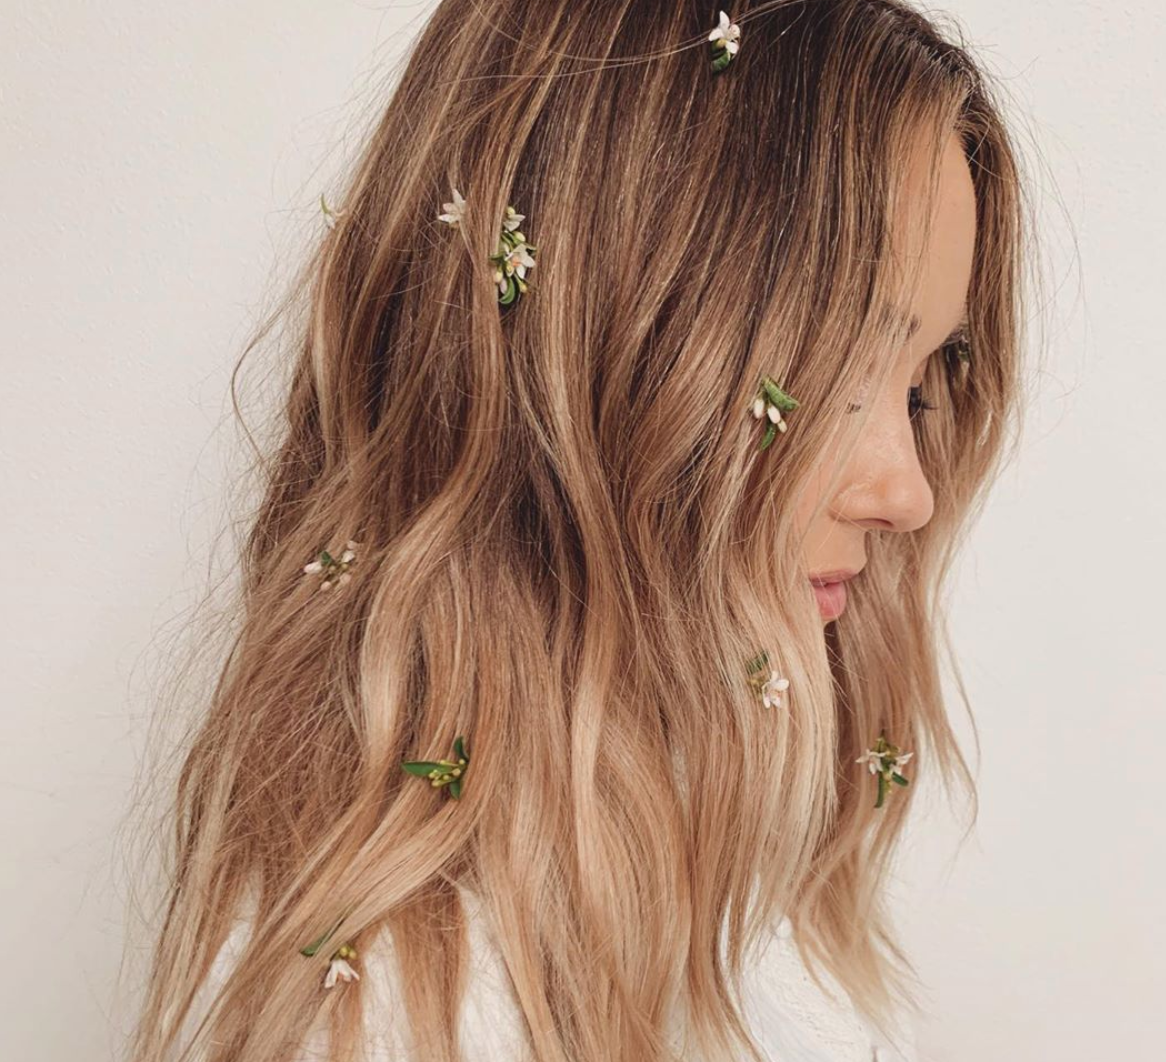 40 Shades Of Blonde Hair Color To Try